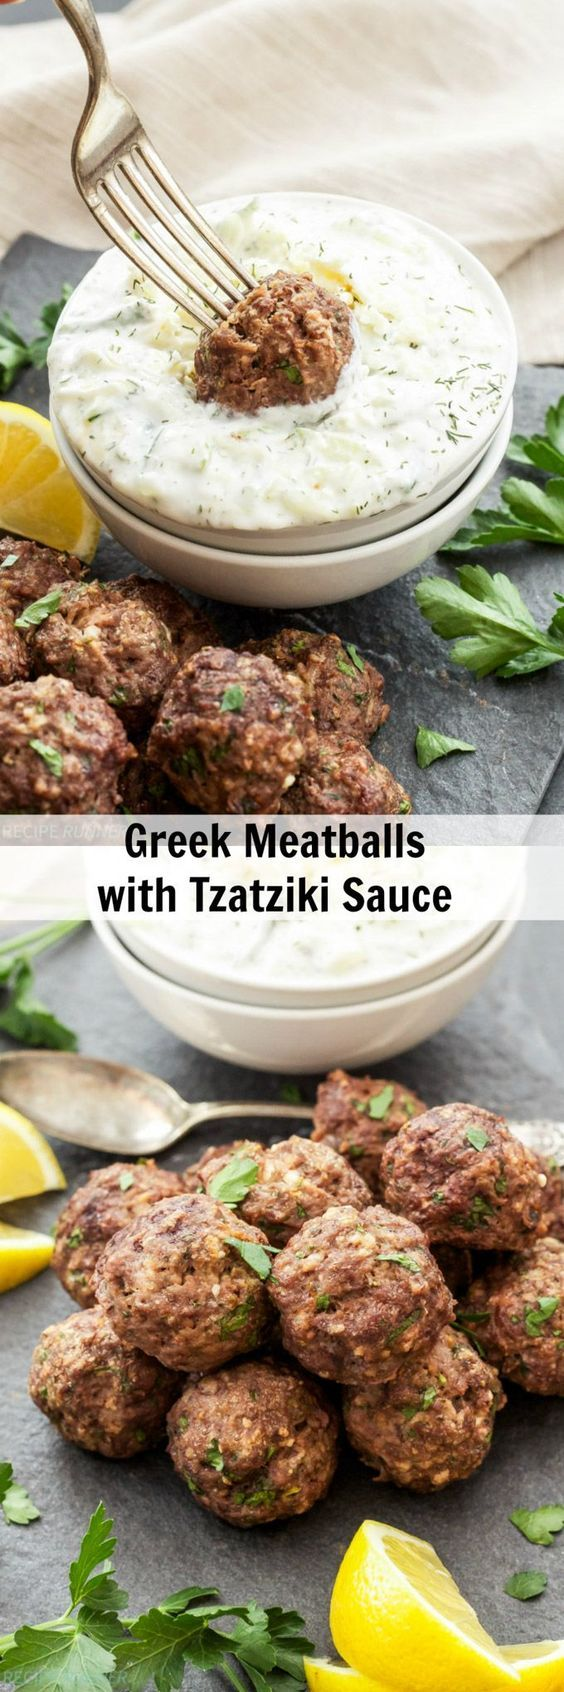 Greek Meatballs with Tzatziki Sauce Meatballs loaded with spices lemon zest and feta cheese! They're sure to please anyone who loves Greek flavors!